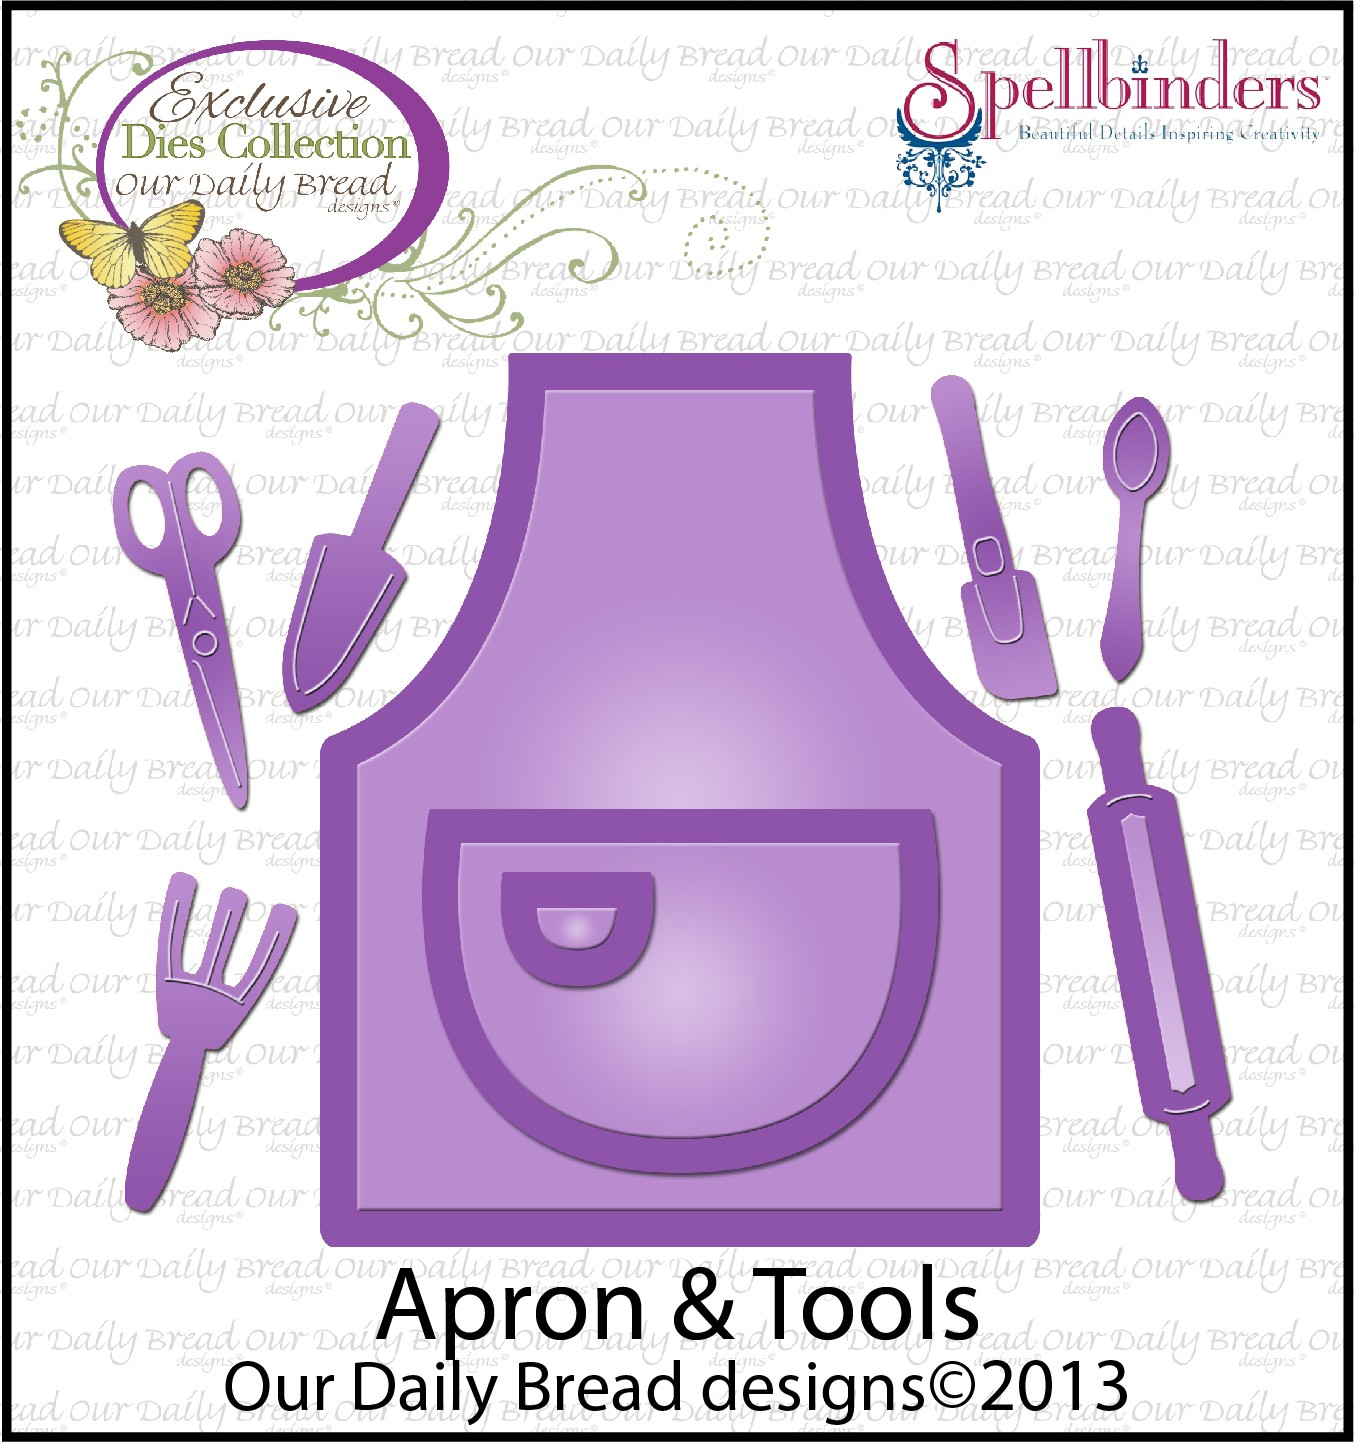 https://www.ourdailybreaddesigns.com/media/catalog/product/cache/1/image/9df78eab33525d08d6e5fb8d27136e95/a/p/apron_tools_dies.jpg